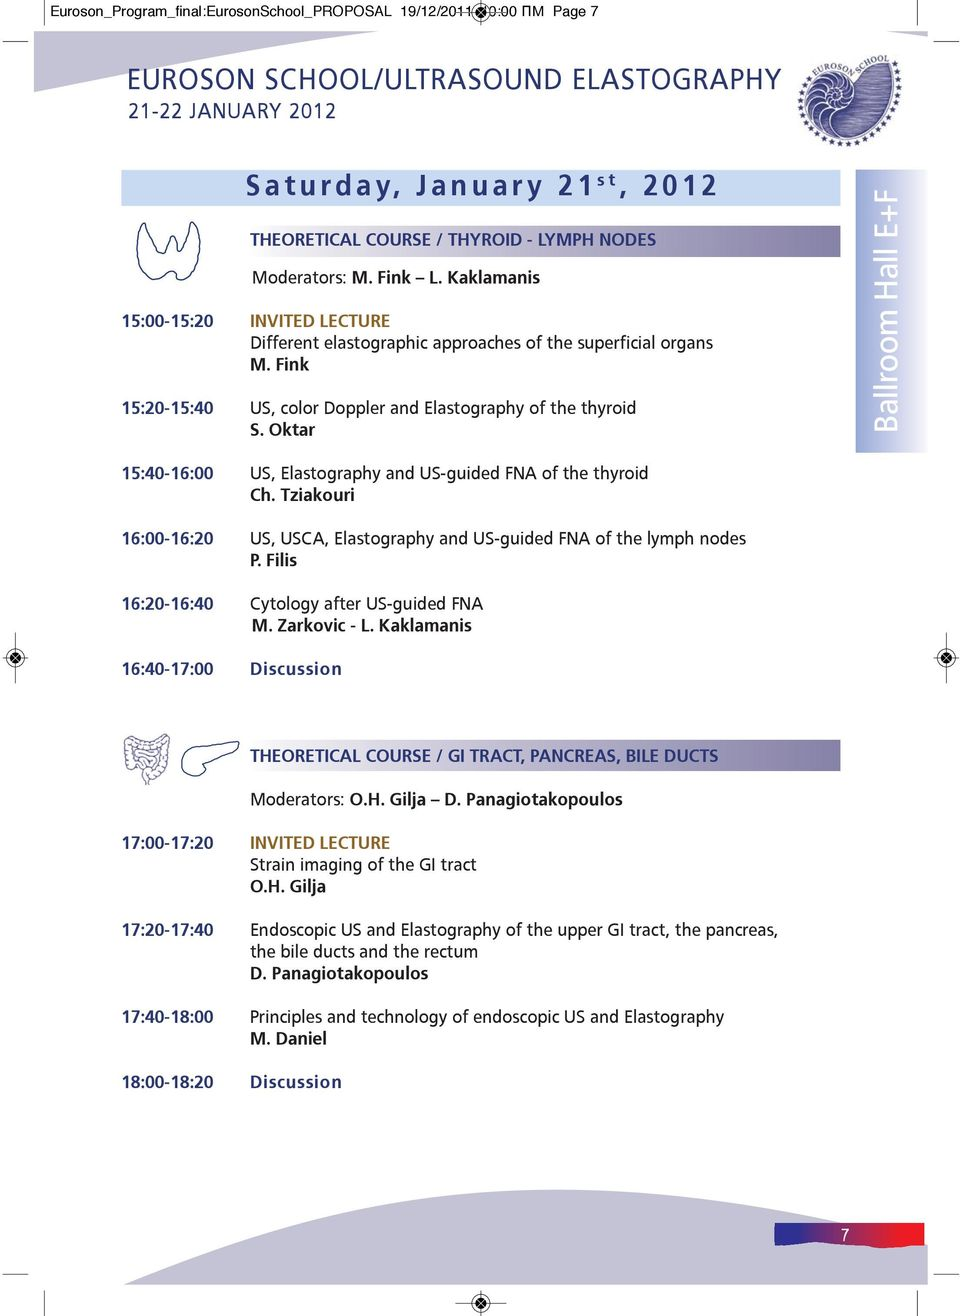 Oktar Ballroom Hall E+F 15:40-16:00 US, Elastography and US-guided FNA of the thyroid Ch. Tziakouri 16:00-16:20 US, USCA, Elastography and US-guided FNA of the lymph nodes P.